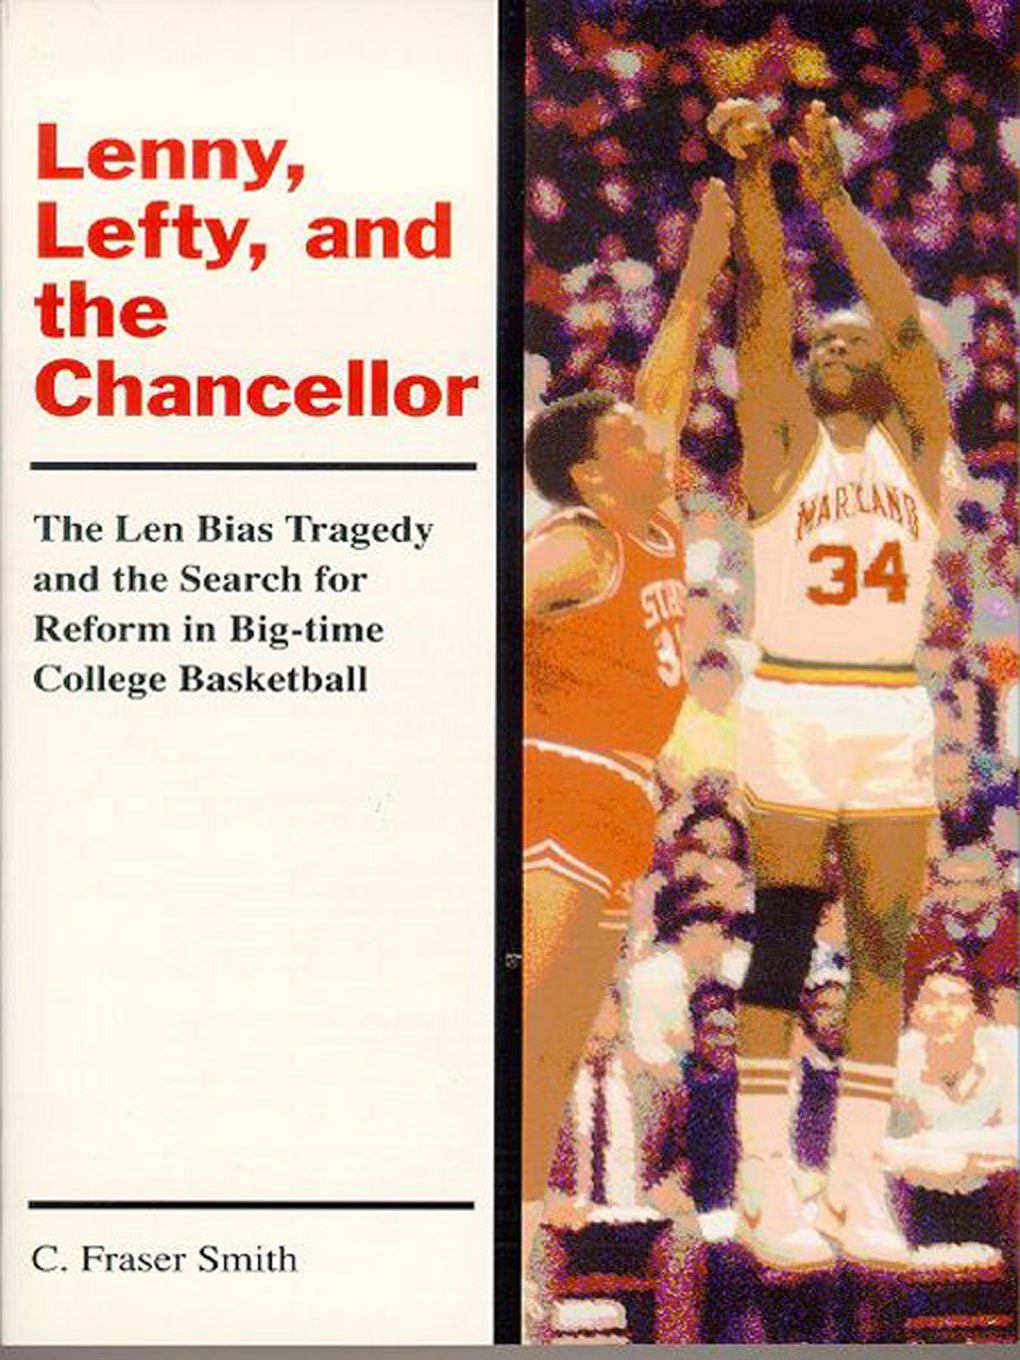 Lenny, Lefty, And The Chancellor: The Len Bias Tragedy And The Search For Reform In Big-Time College Basketball By: C. Fraser Smith